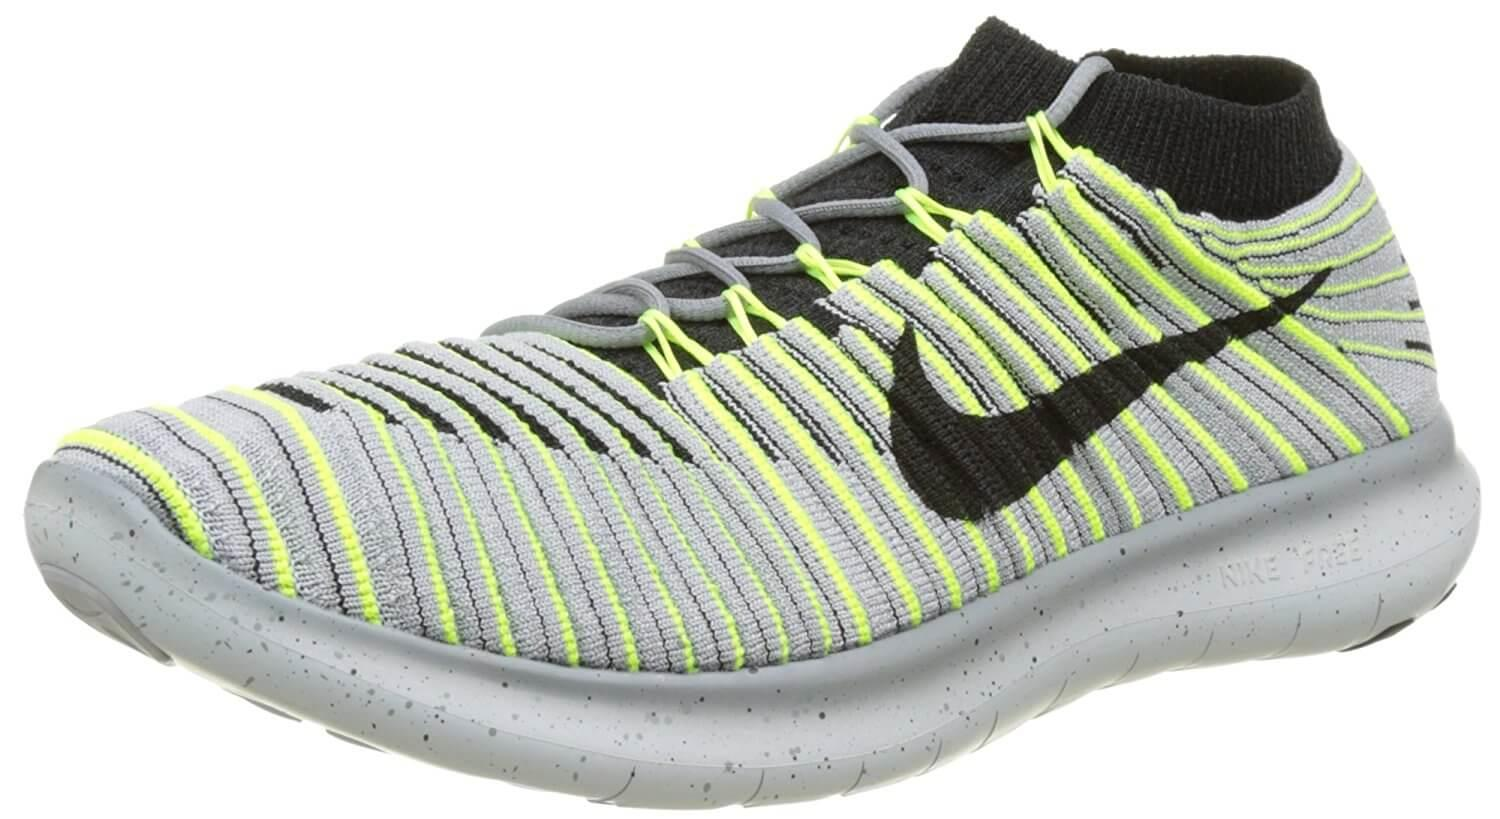 7239df45119b3 The Nike Free RN Motion Flyknit was designed to accommodate barefoot-style  runners.